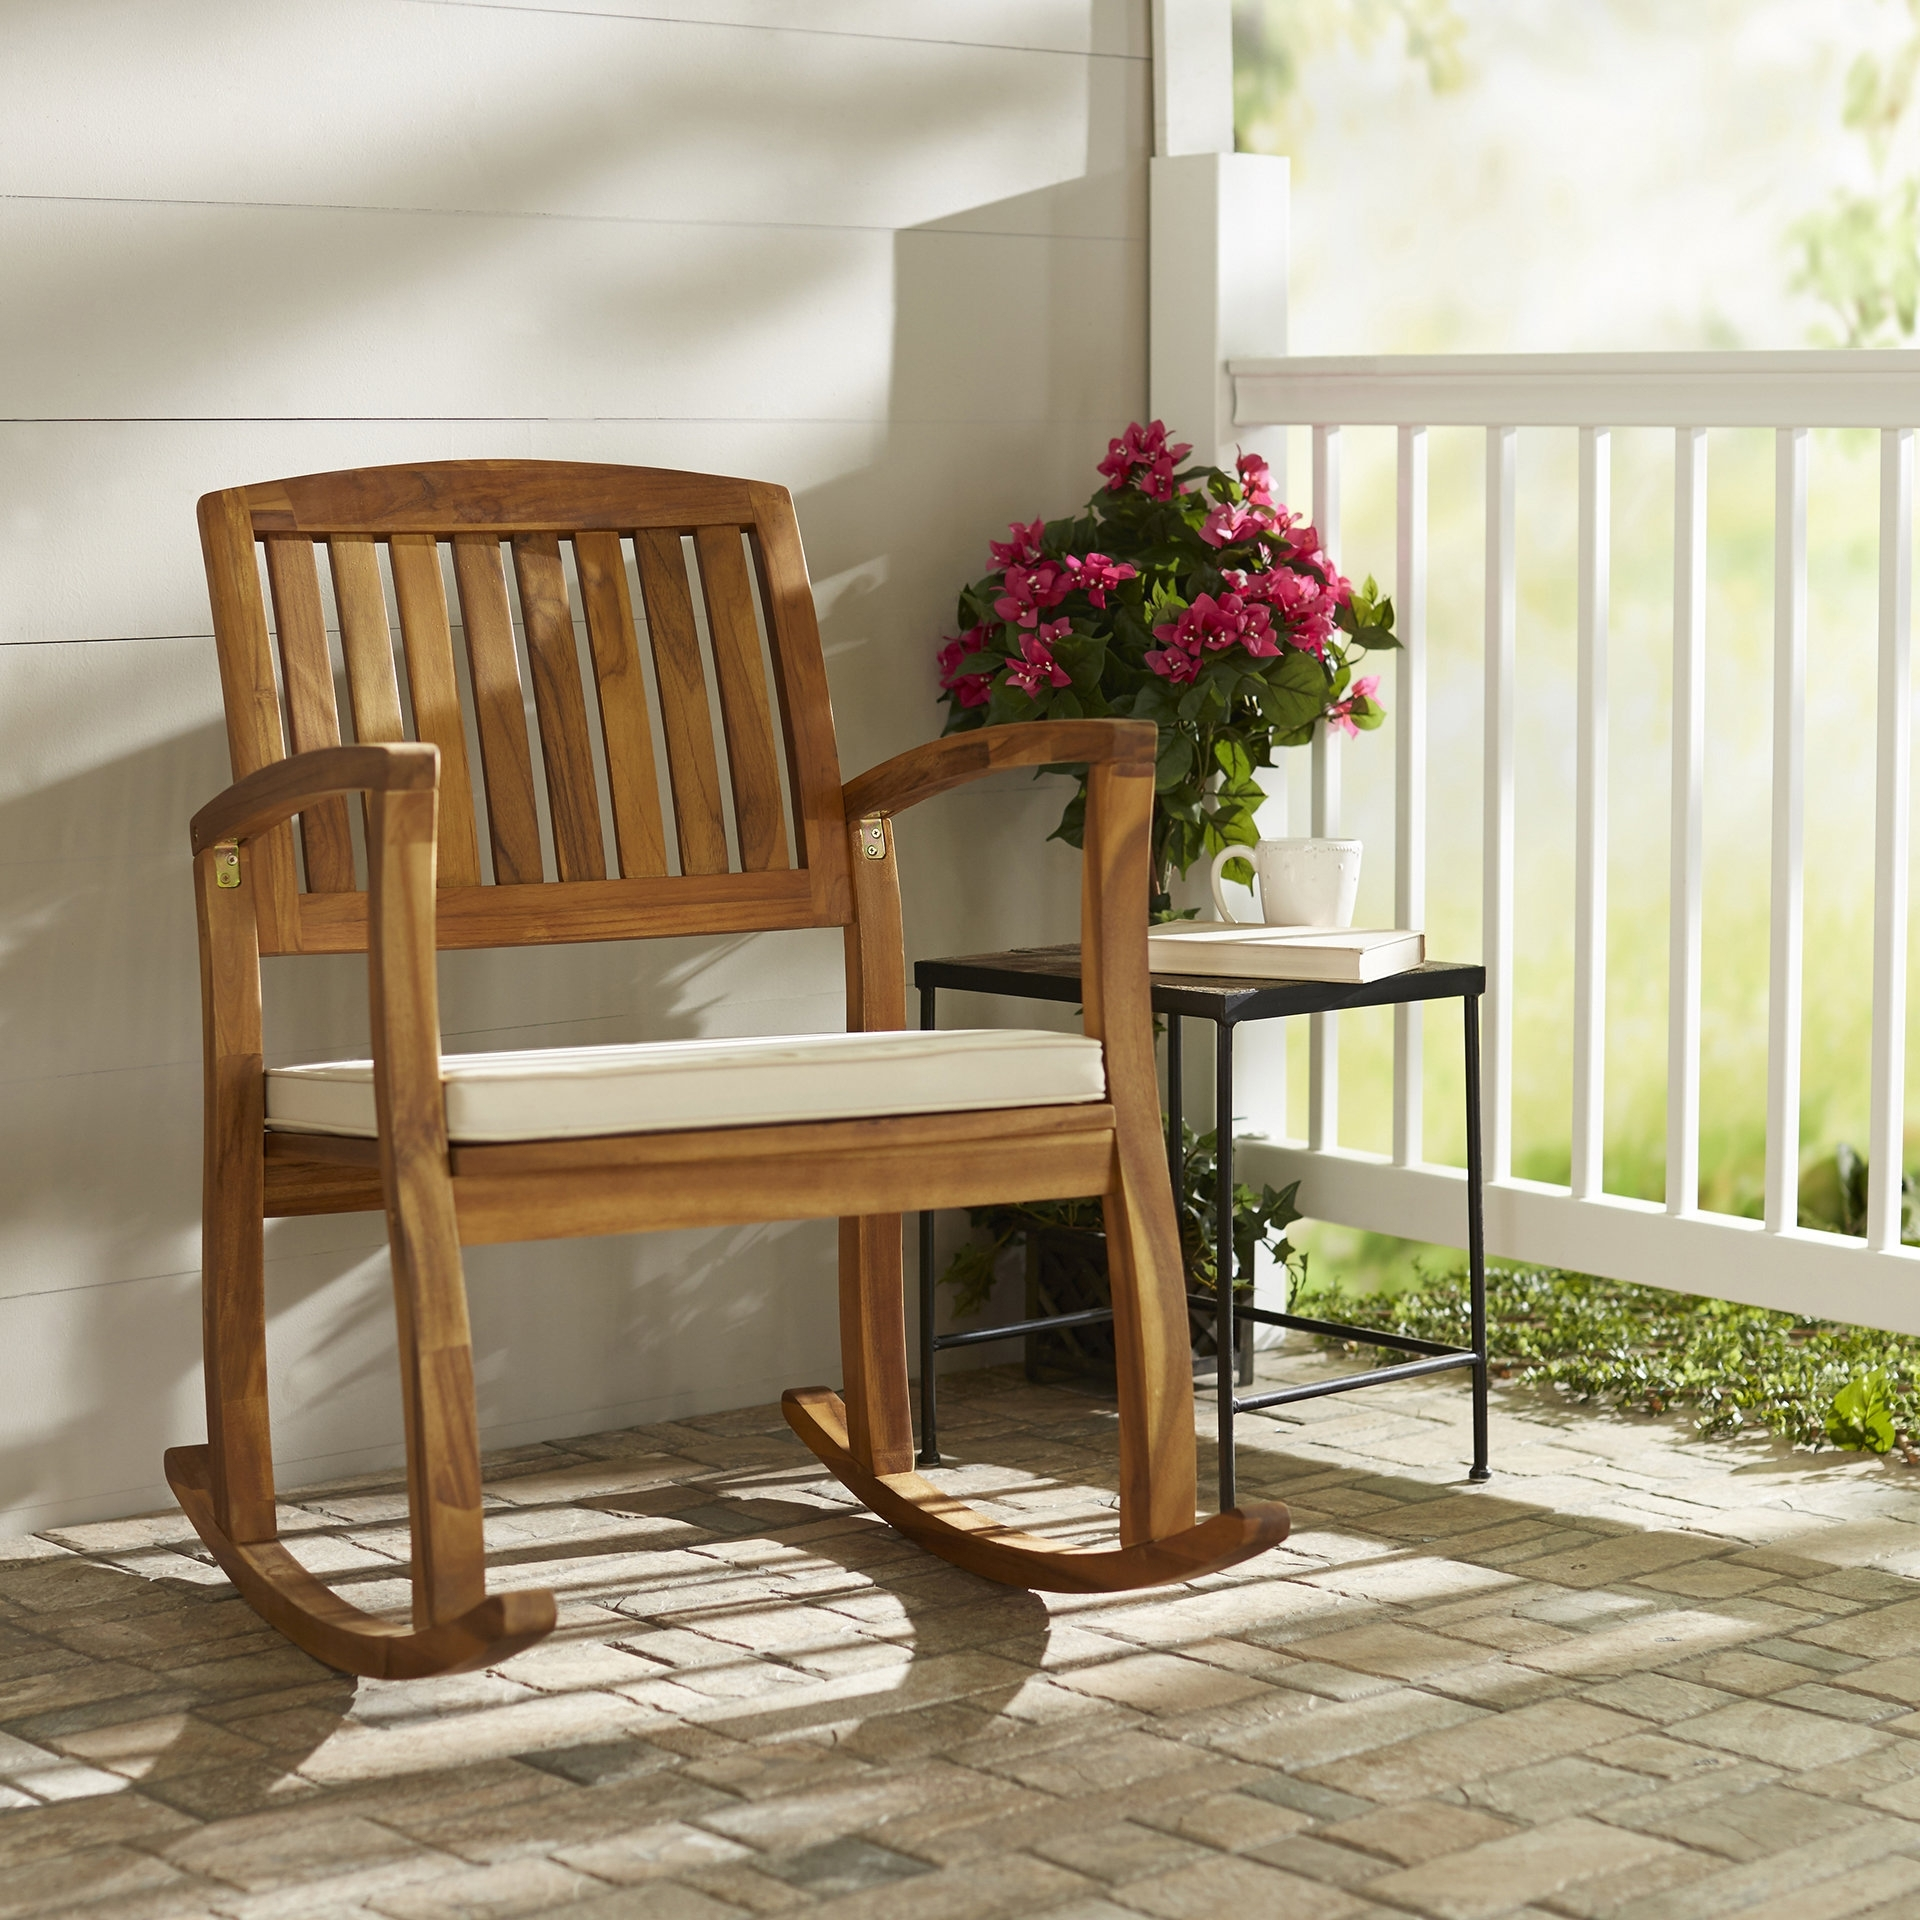 Rocking Chairs For Adults With Regard To Famous Highland Dunes Kairi Rocking Chair With Cushion & Reviews (View 11 of 15)